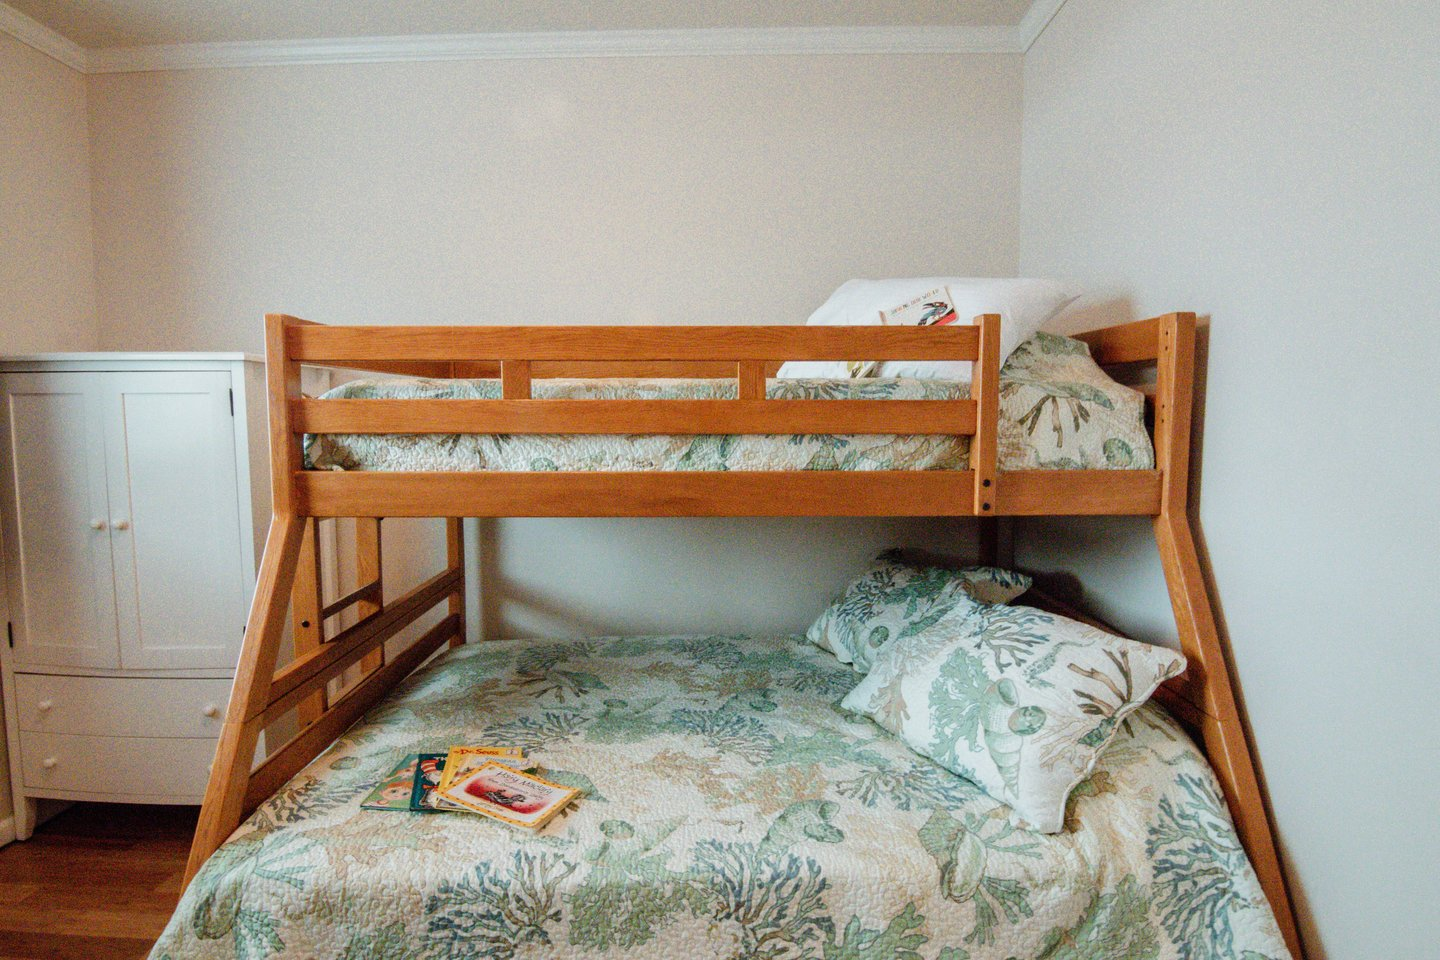 The full/twin bunk is perfect for your kids!